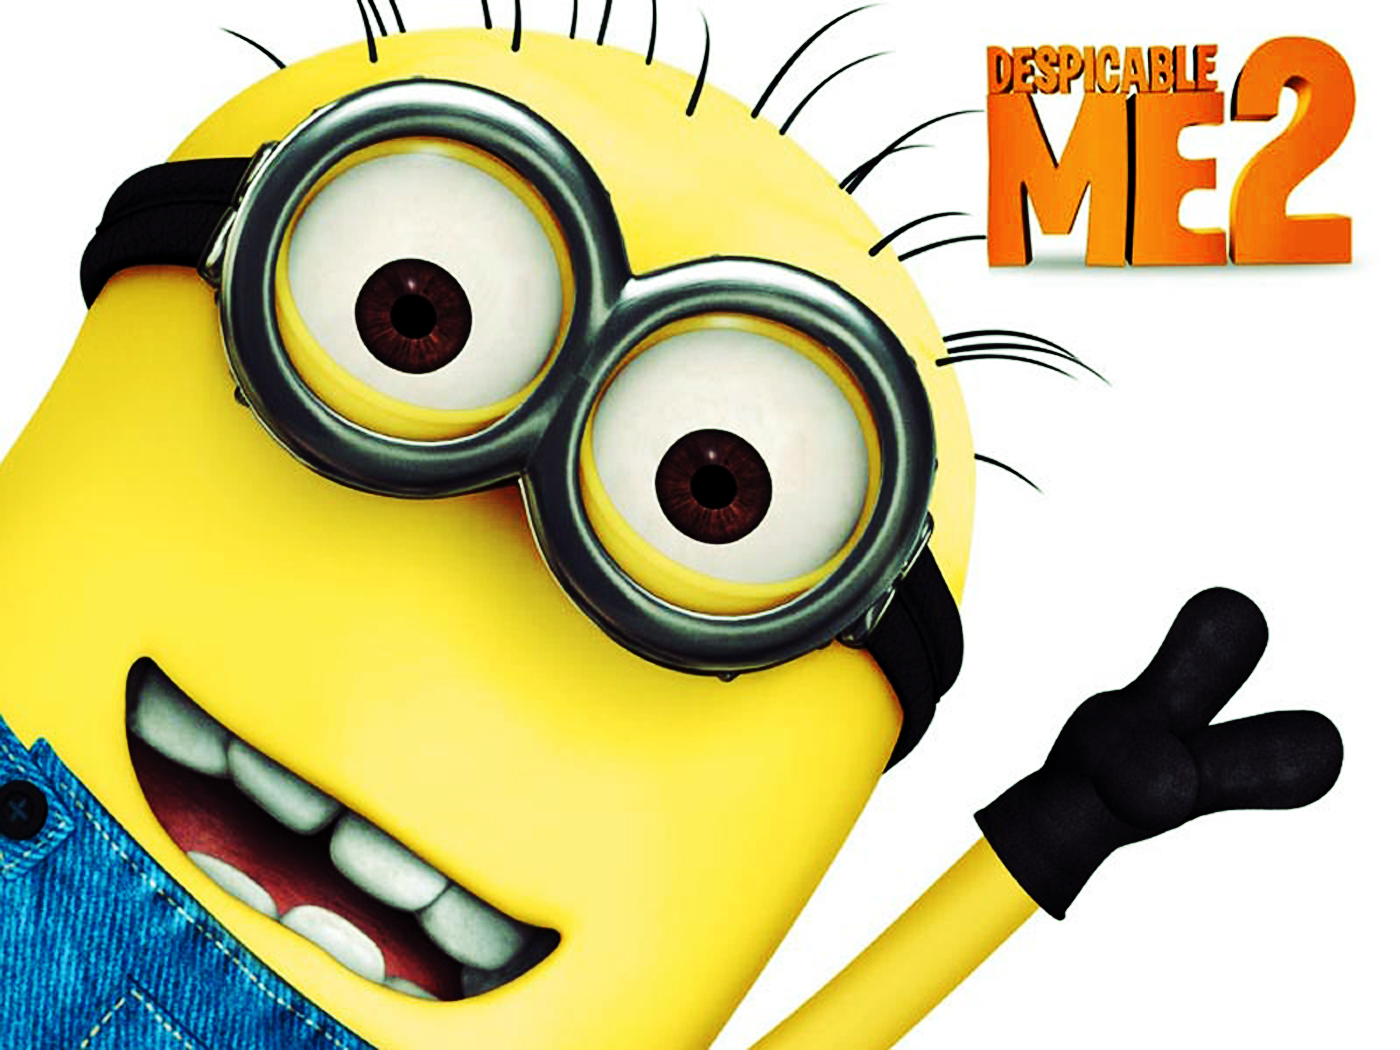 despicable me 2 images despicable me 2 hd wallpaper and background